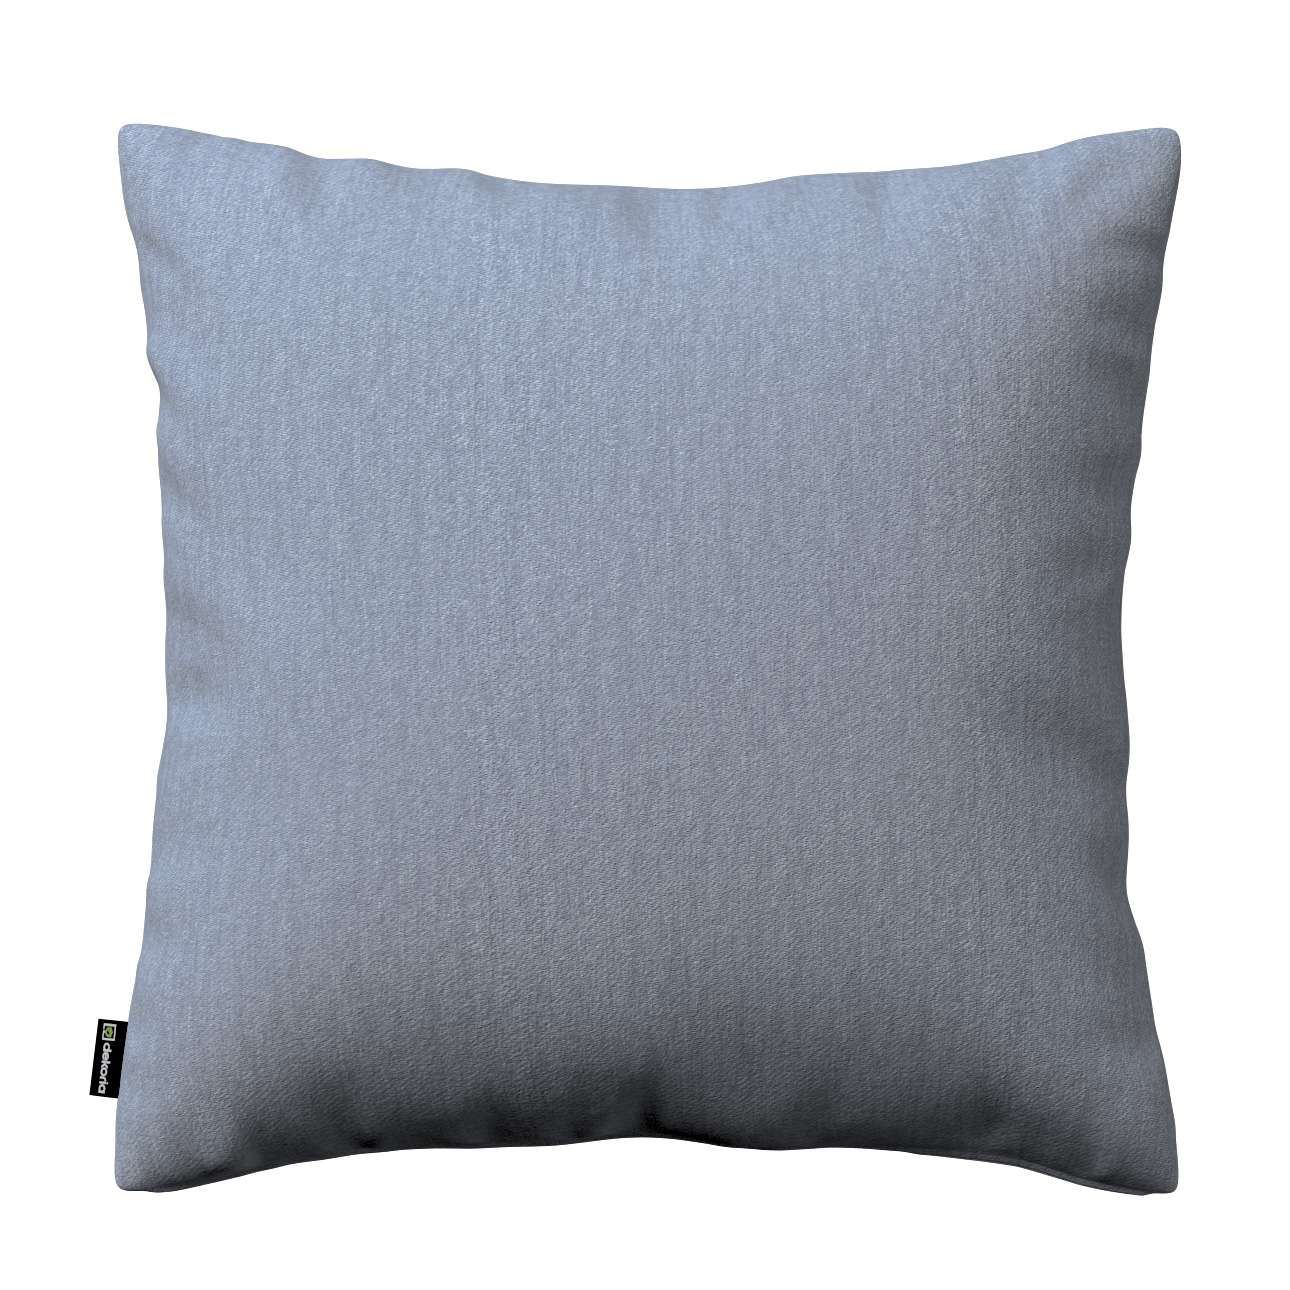 Kinga cushion cover in collection Chenille, fabric: 702-13